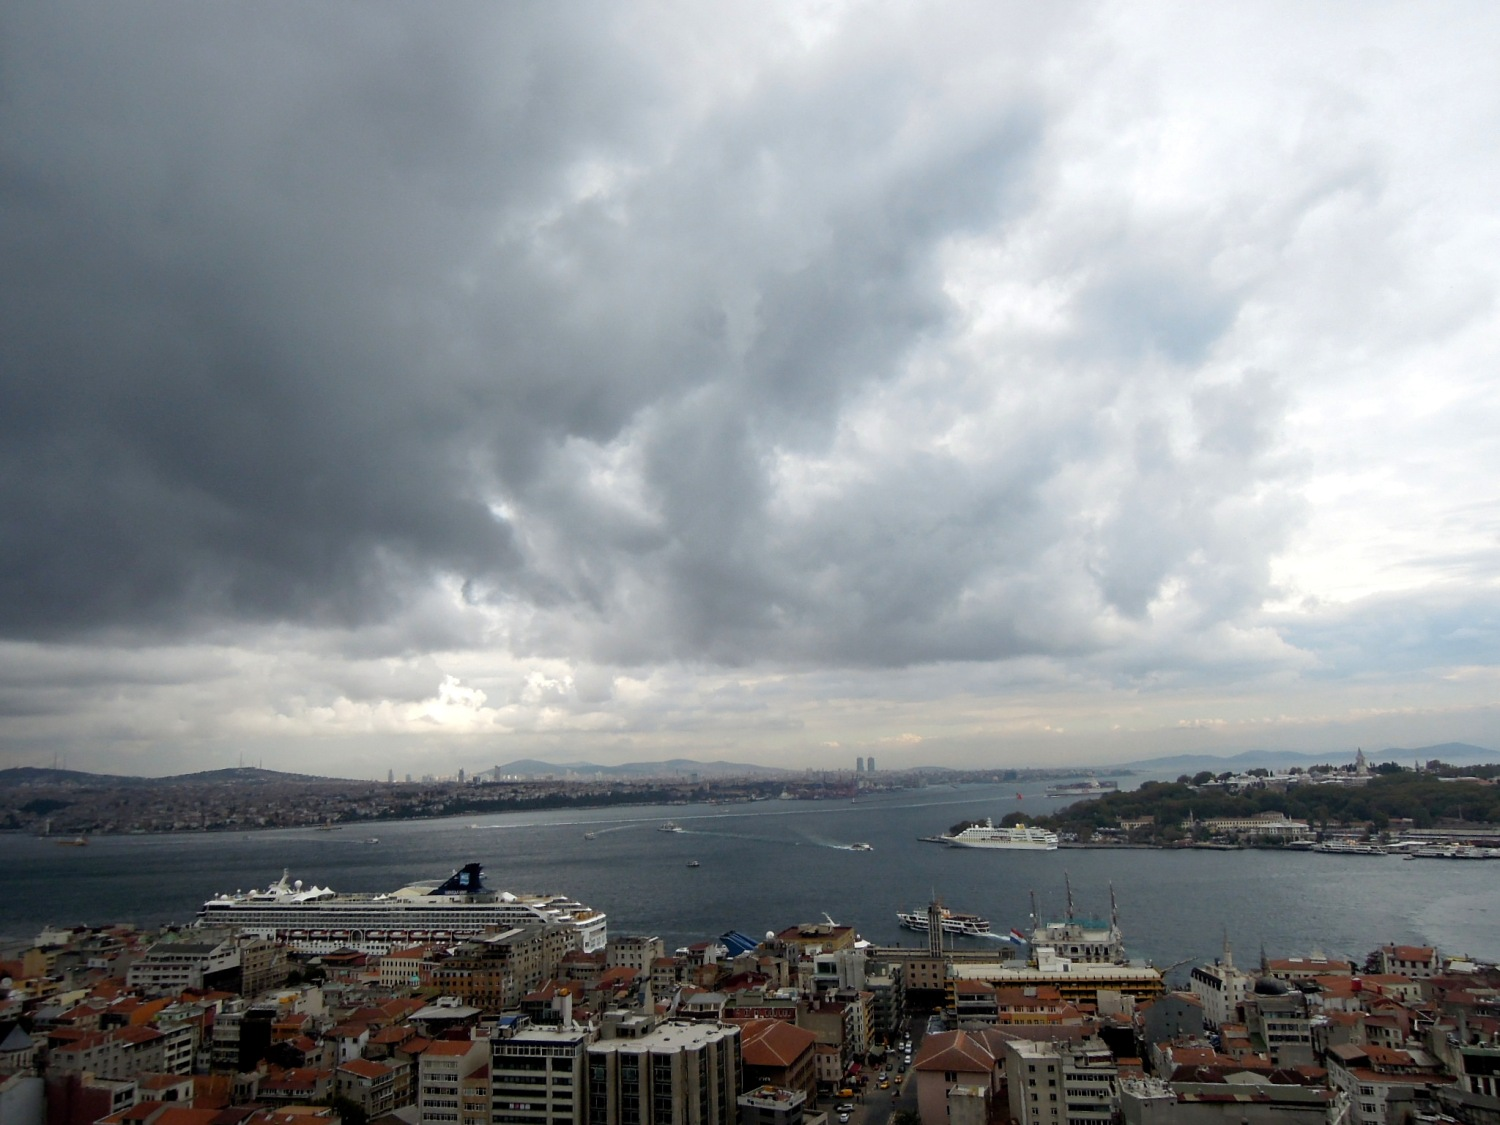 View of the Bosphorus and the mouth of the Golden Horn